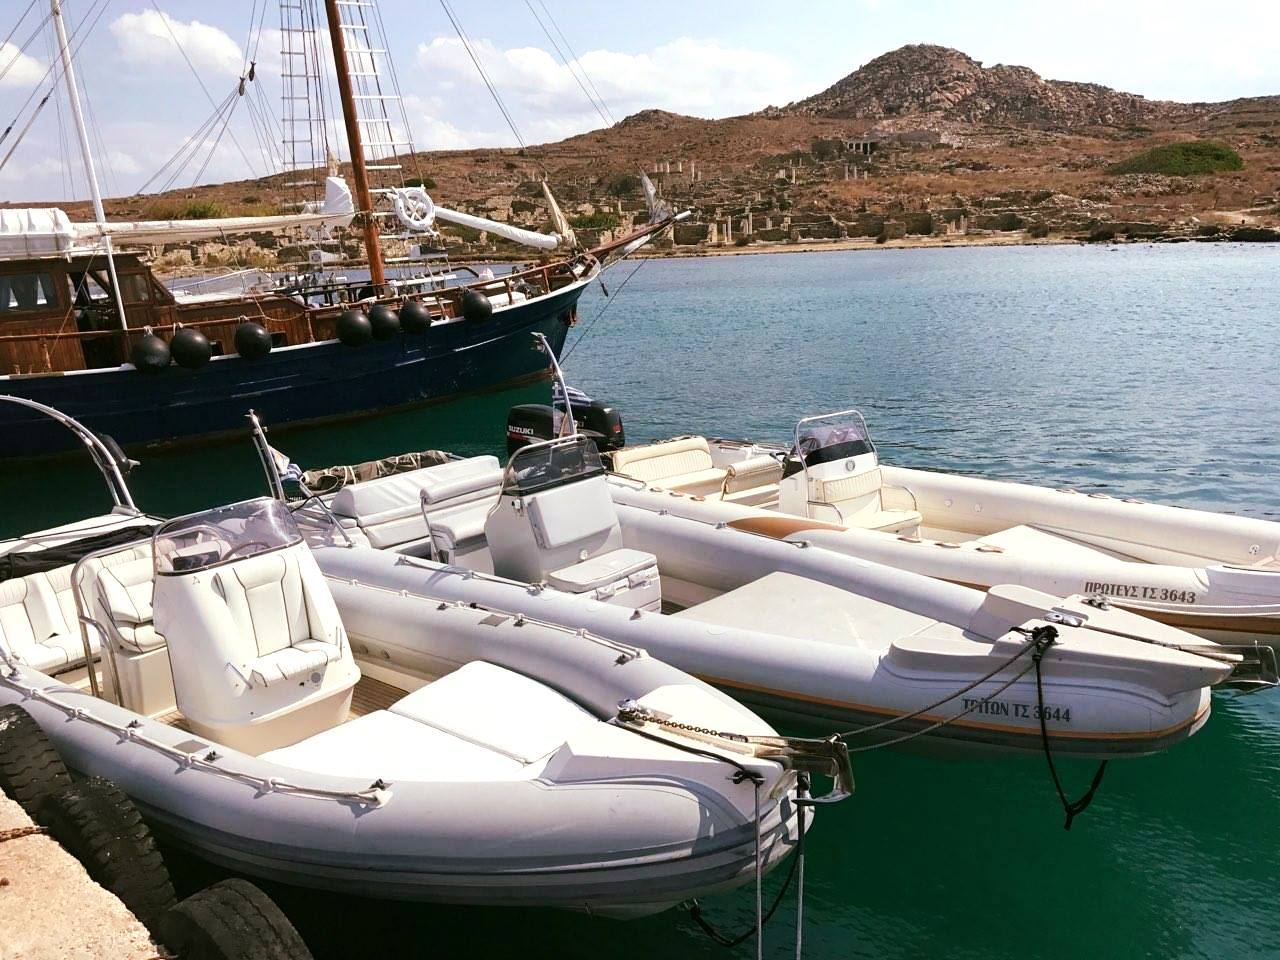 Mykonos - Delos - Rhenia Private Cruise